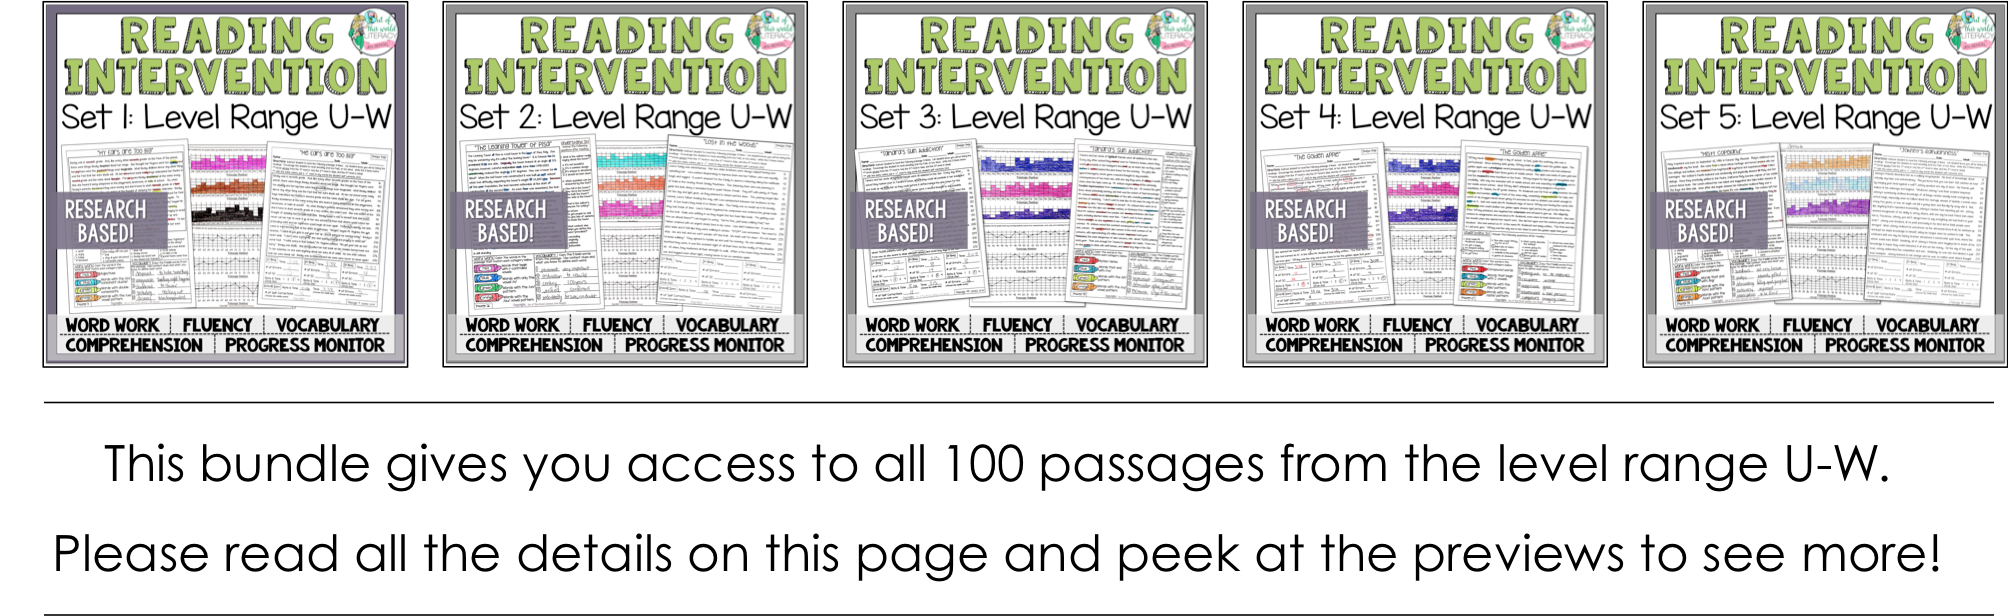 Reading intervention program sets u w jen bengel 8 progress monitoring pages for teacherstutors to track student growth with fluency comprehension word work and vocabulary geenschuldenfo Image collections